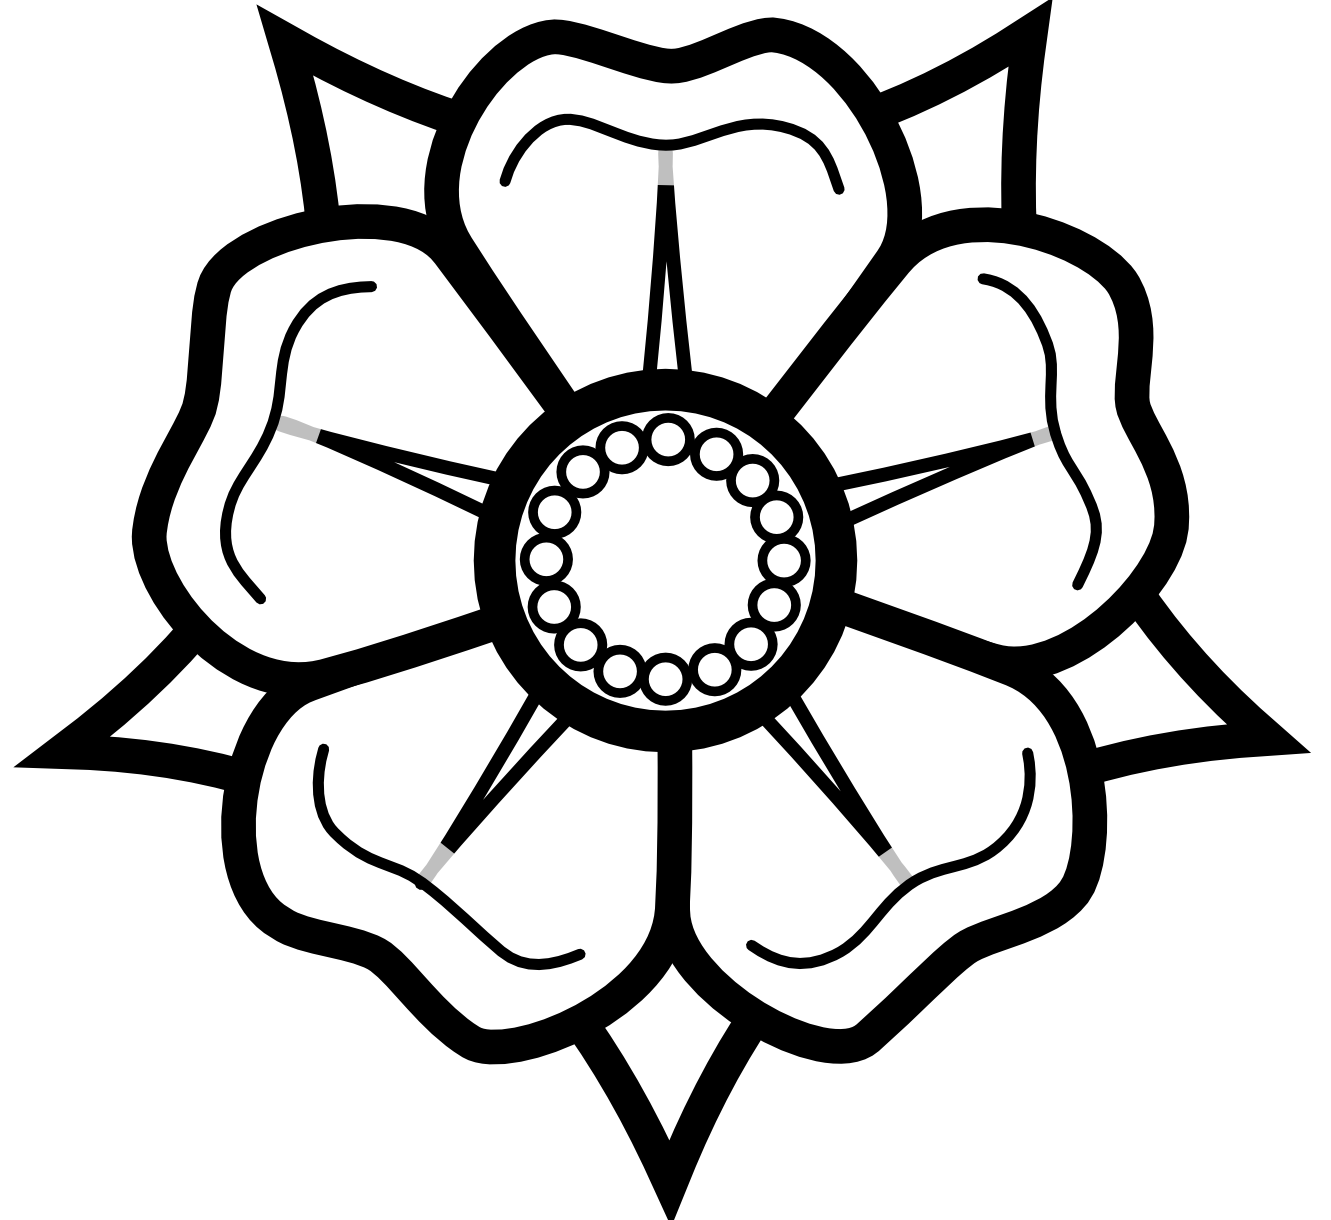 Black And White Flower Drawing Png 41801 Free Icons And Png